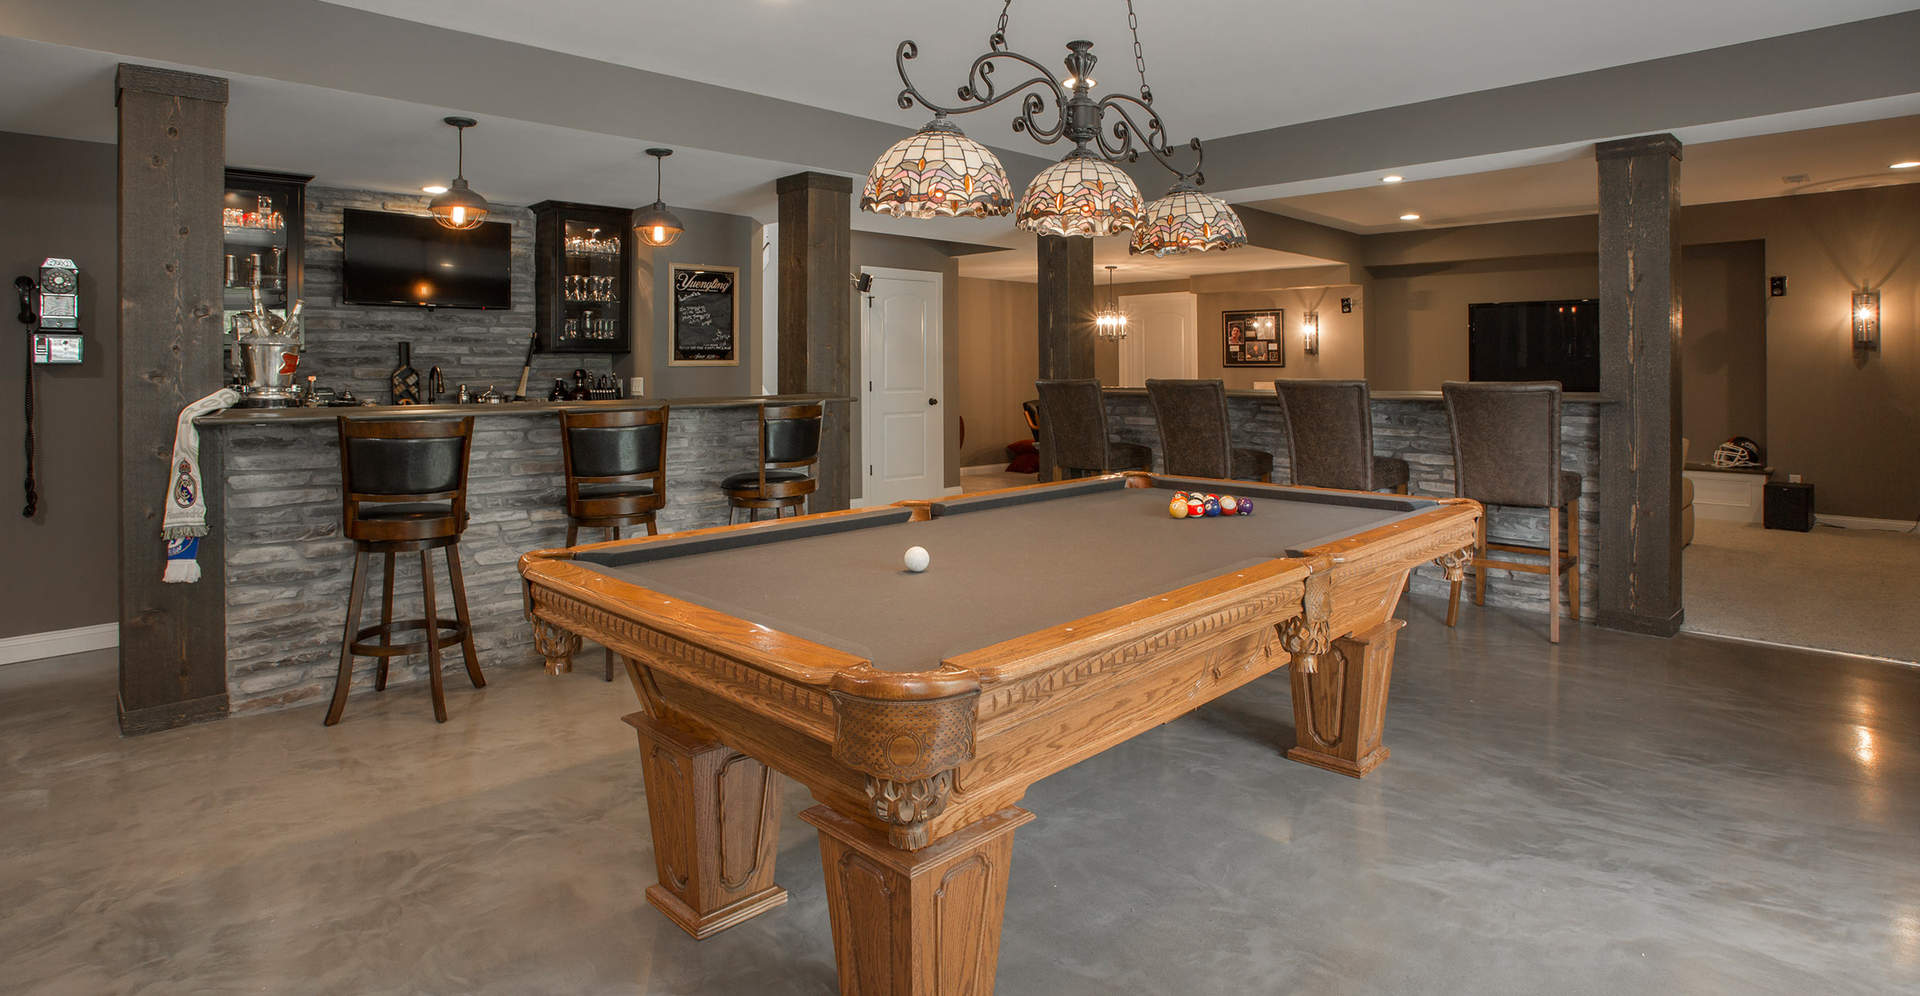 Finished Basement with pool table | First Floor Master Rustic Custom Home Design | Carriage Hill of Liberty Township Ohio